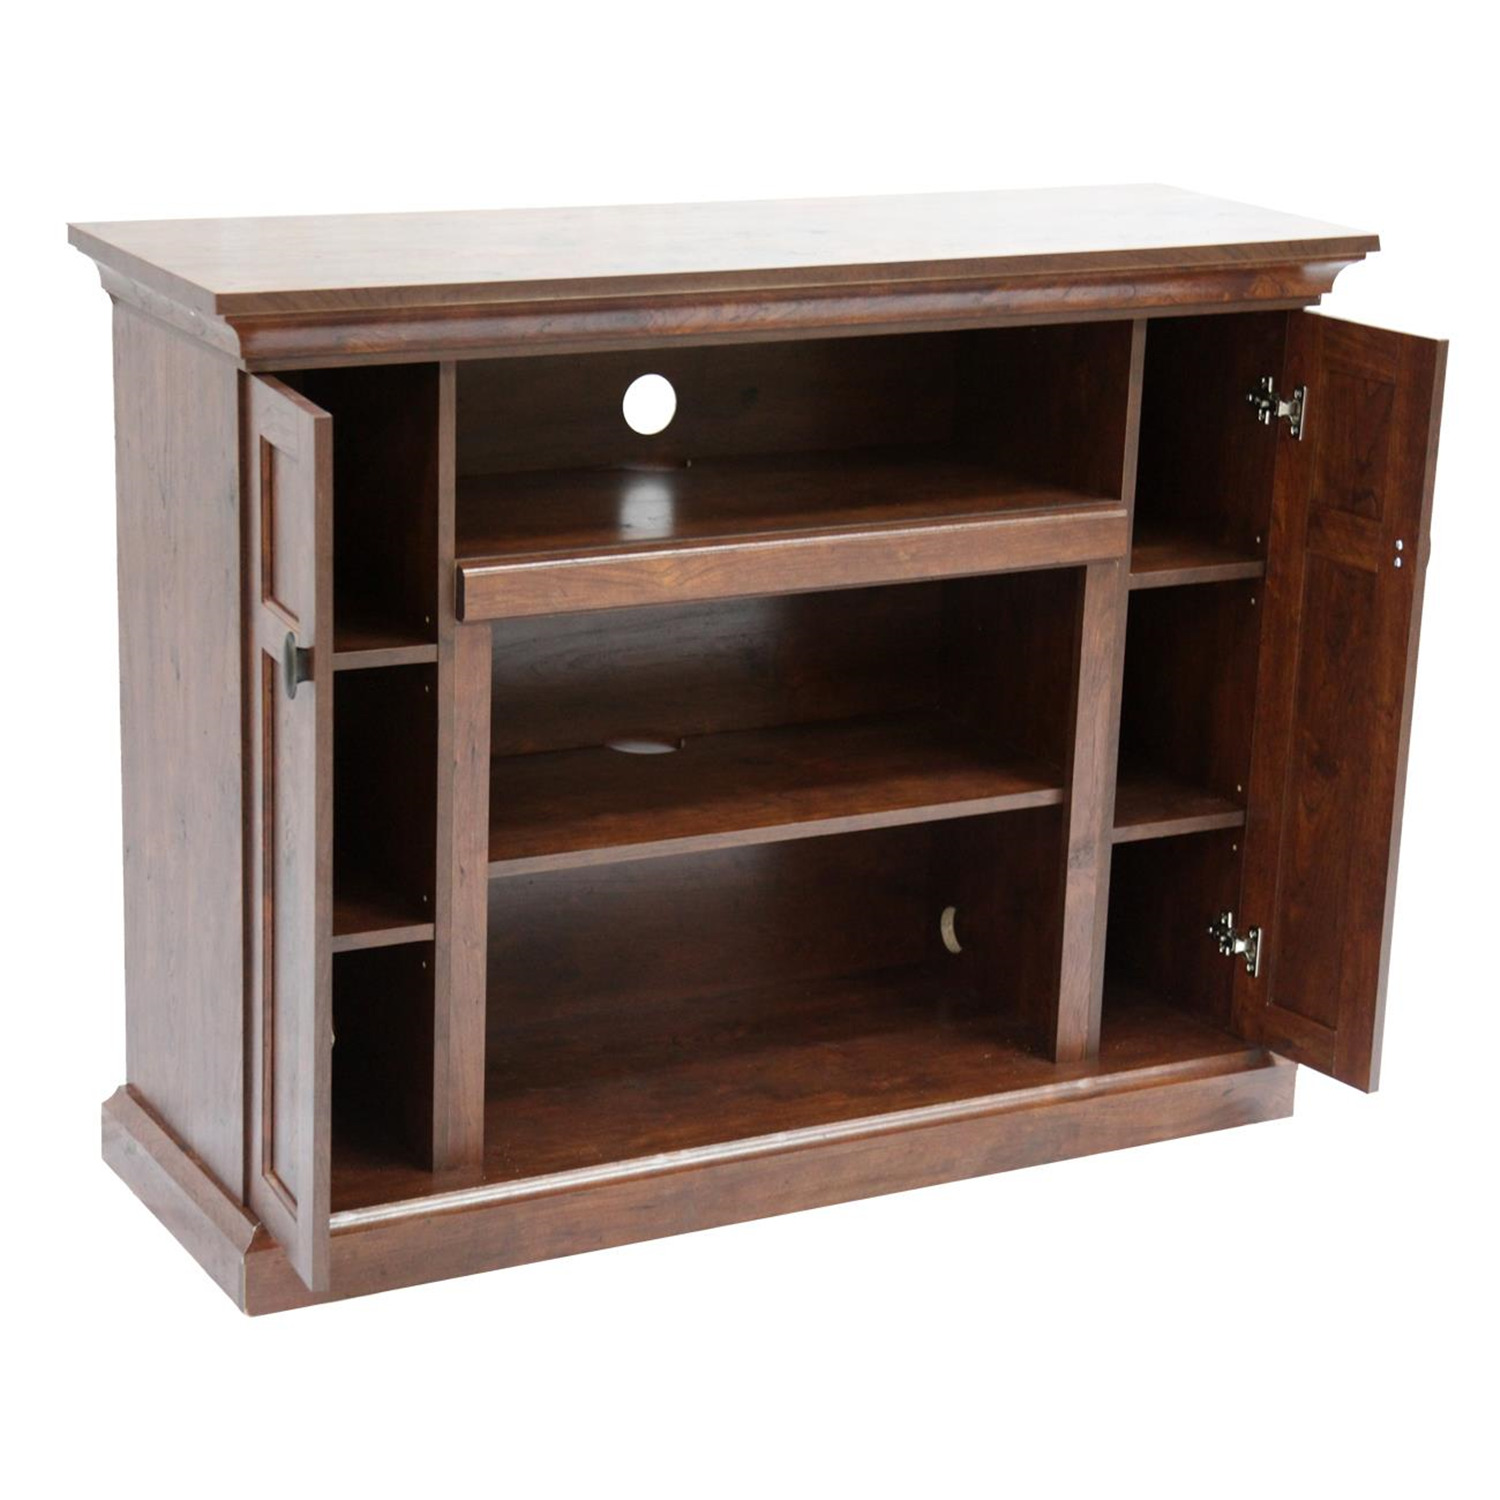 Home source dark walnut tv stand with storage by oj for Home source